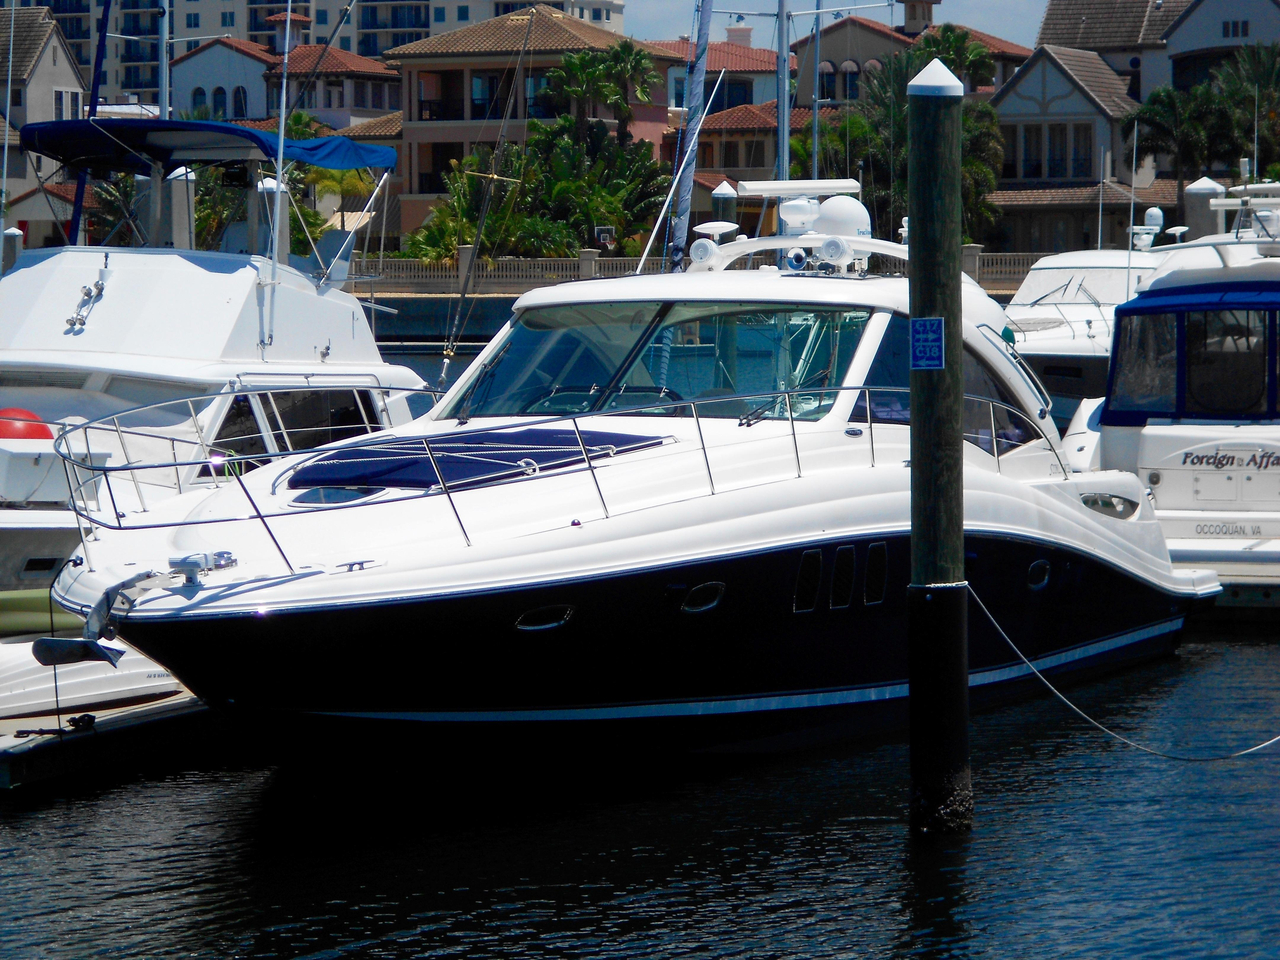 2006 Used Sea Ray 48 Sundancer Motor Yacht For Sale 335 000